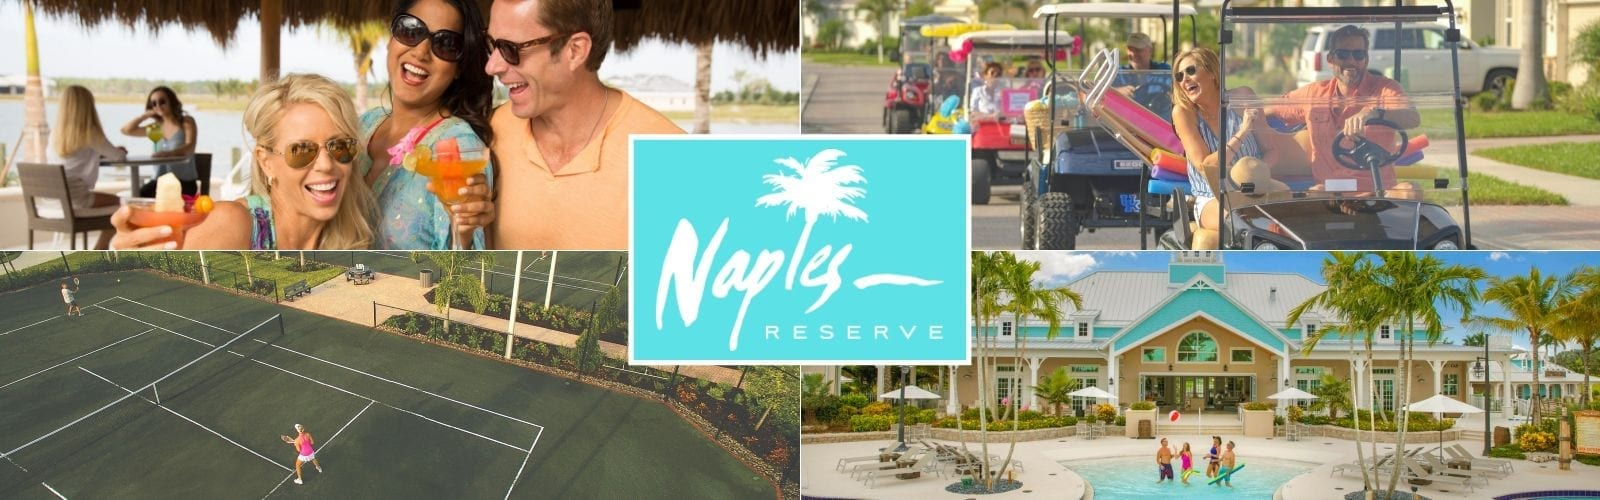 Naples Reserve A Day In The Life